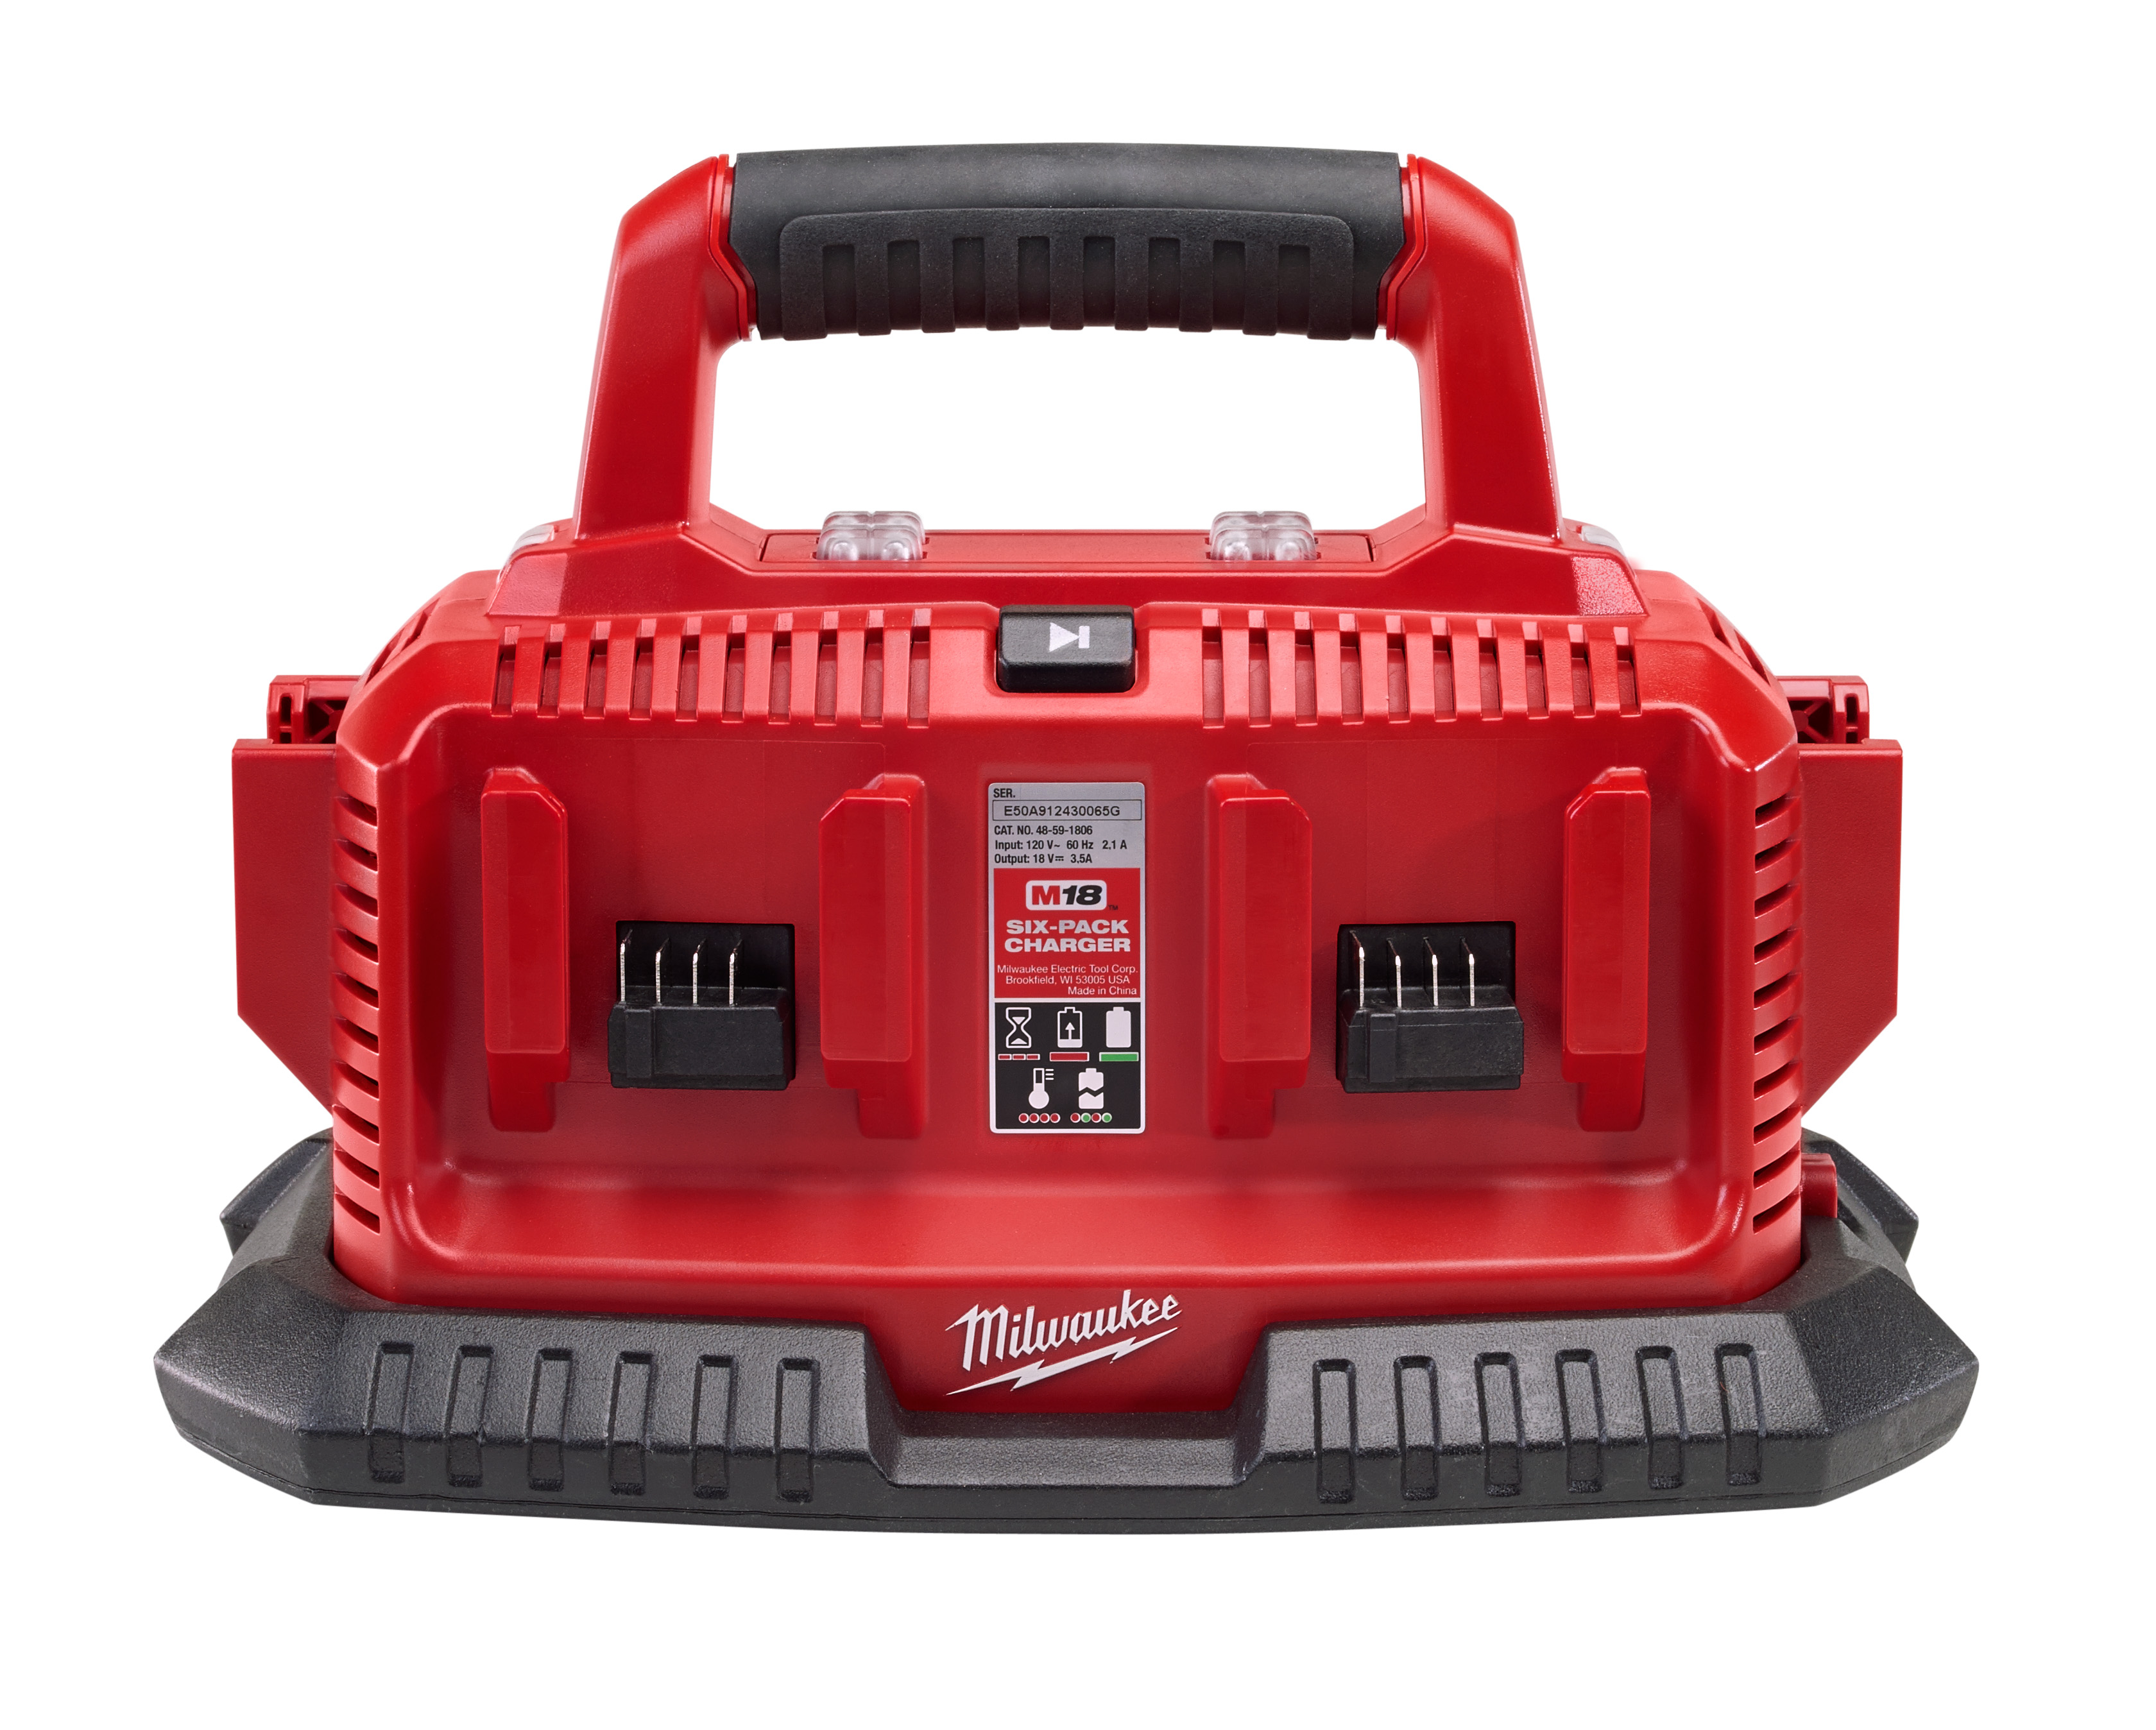 Milwaukee® M18™ 48-59-1806 Sequential Charger, For Use With Milwaukee® M18™ Battery, Lithium-Ion Battery, 0.5 to 1 hr Charging, 6 Batteries